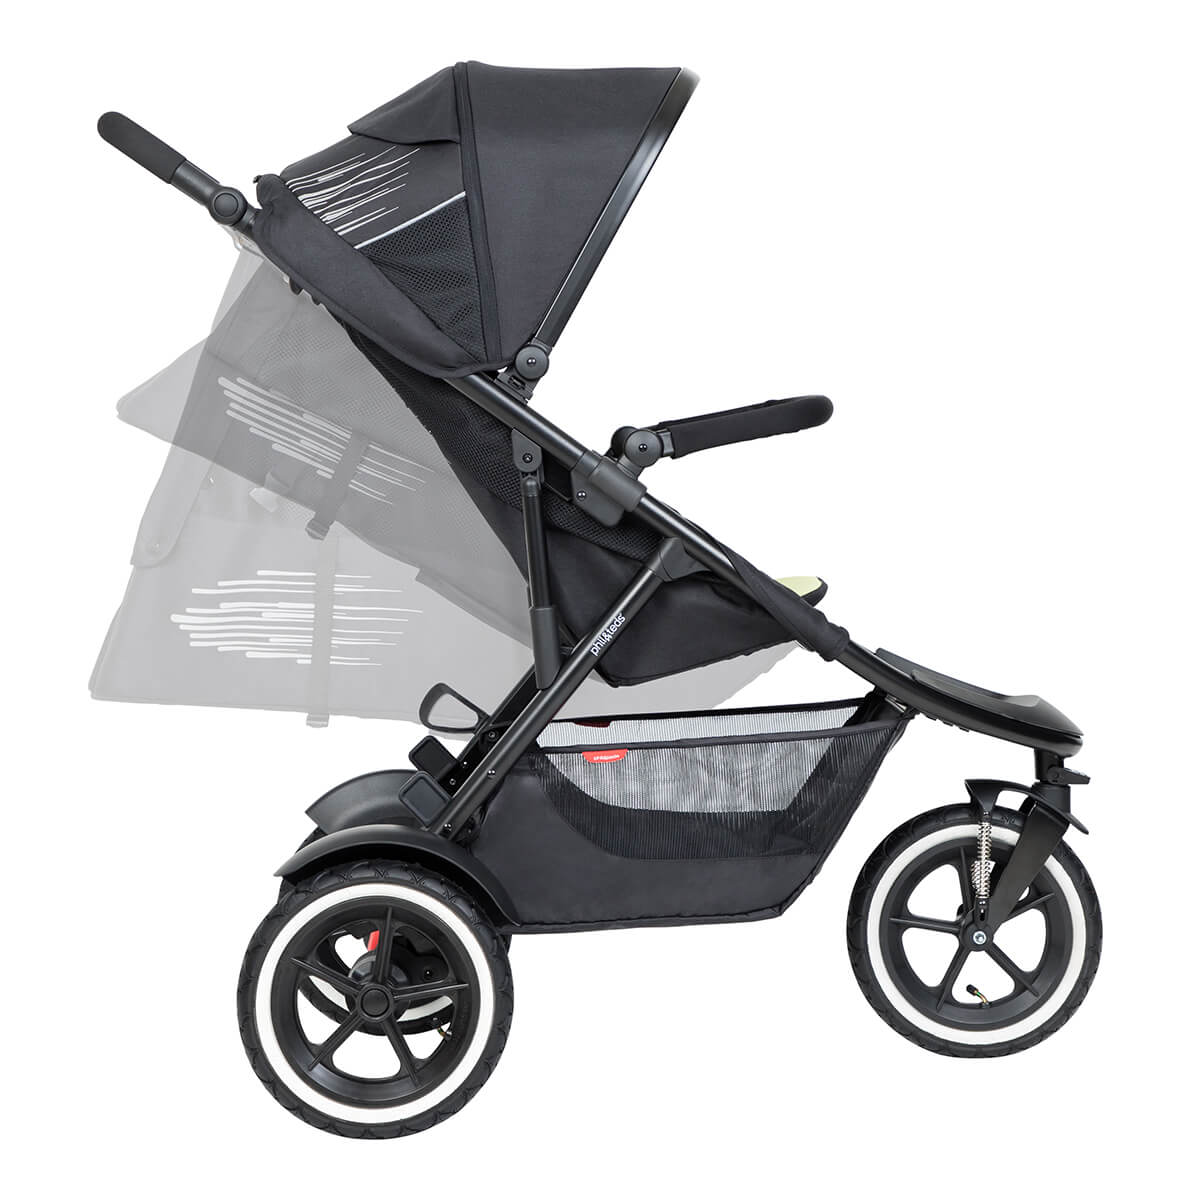 https://cdn.accentuate.io/4546157510761/19119322628201/philteds-sport-buggy-can-recline-in-multiple-angles-including-full-recline-for-newborn-baby-v1625778226618.jpg?1200x1200